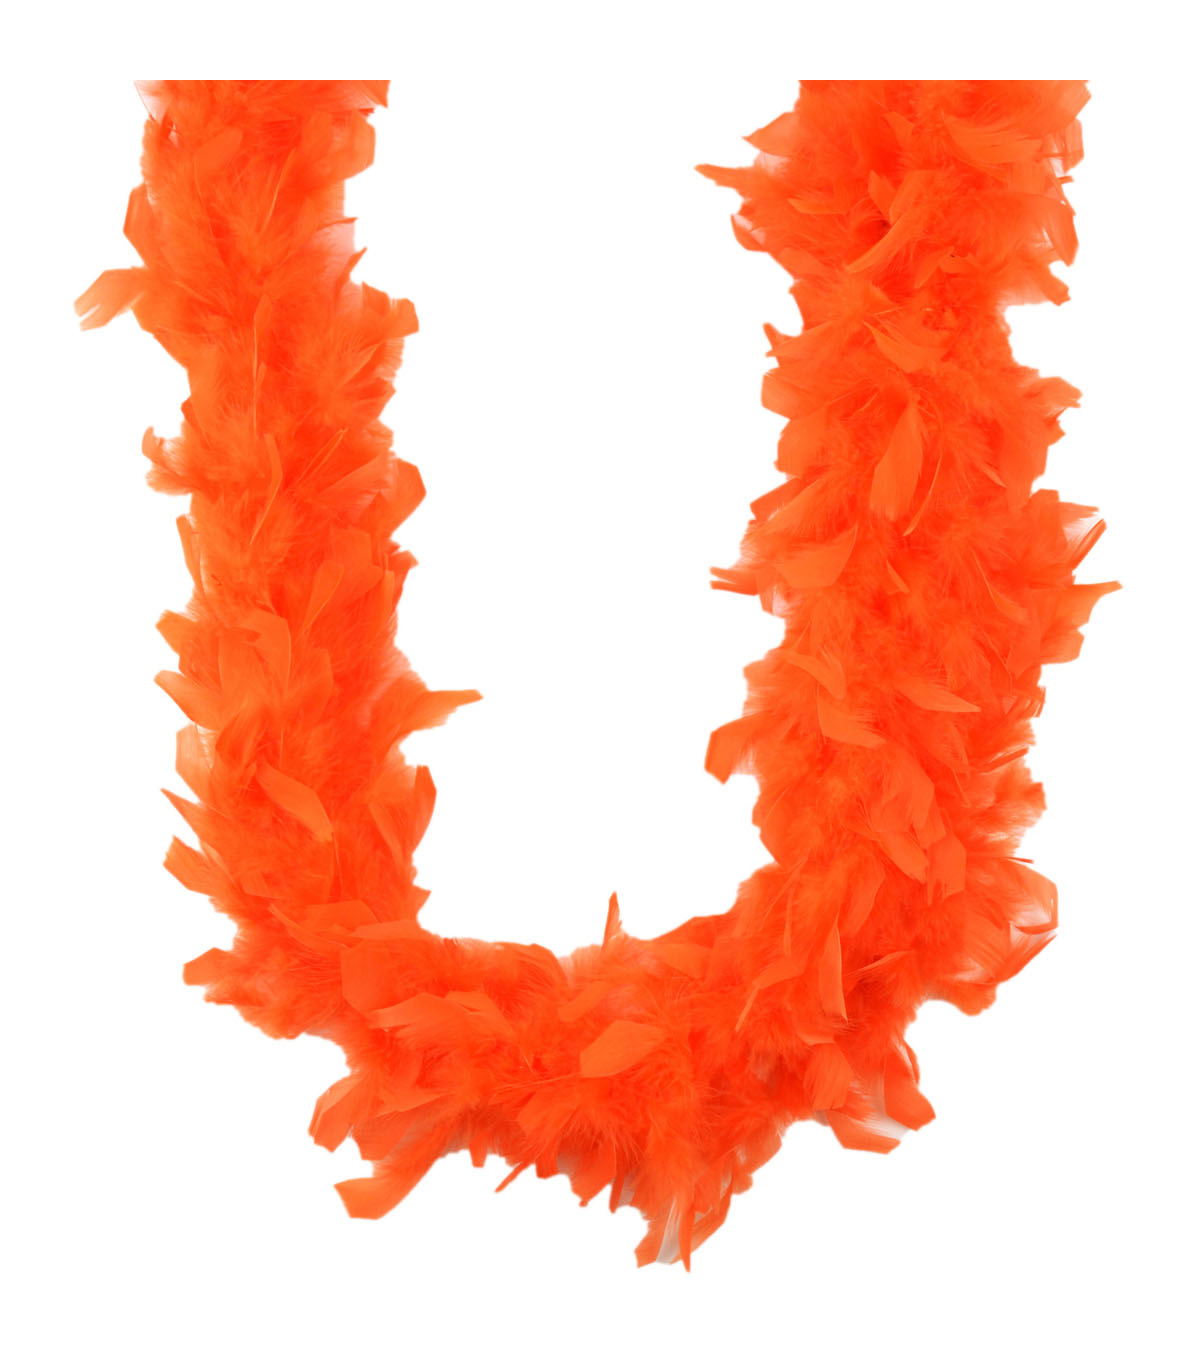 Chandelle Boa Orange, 45 grams, 2 yards